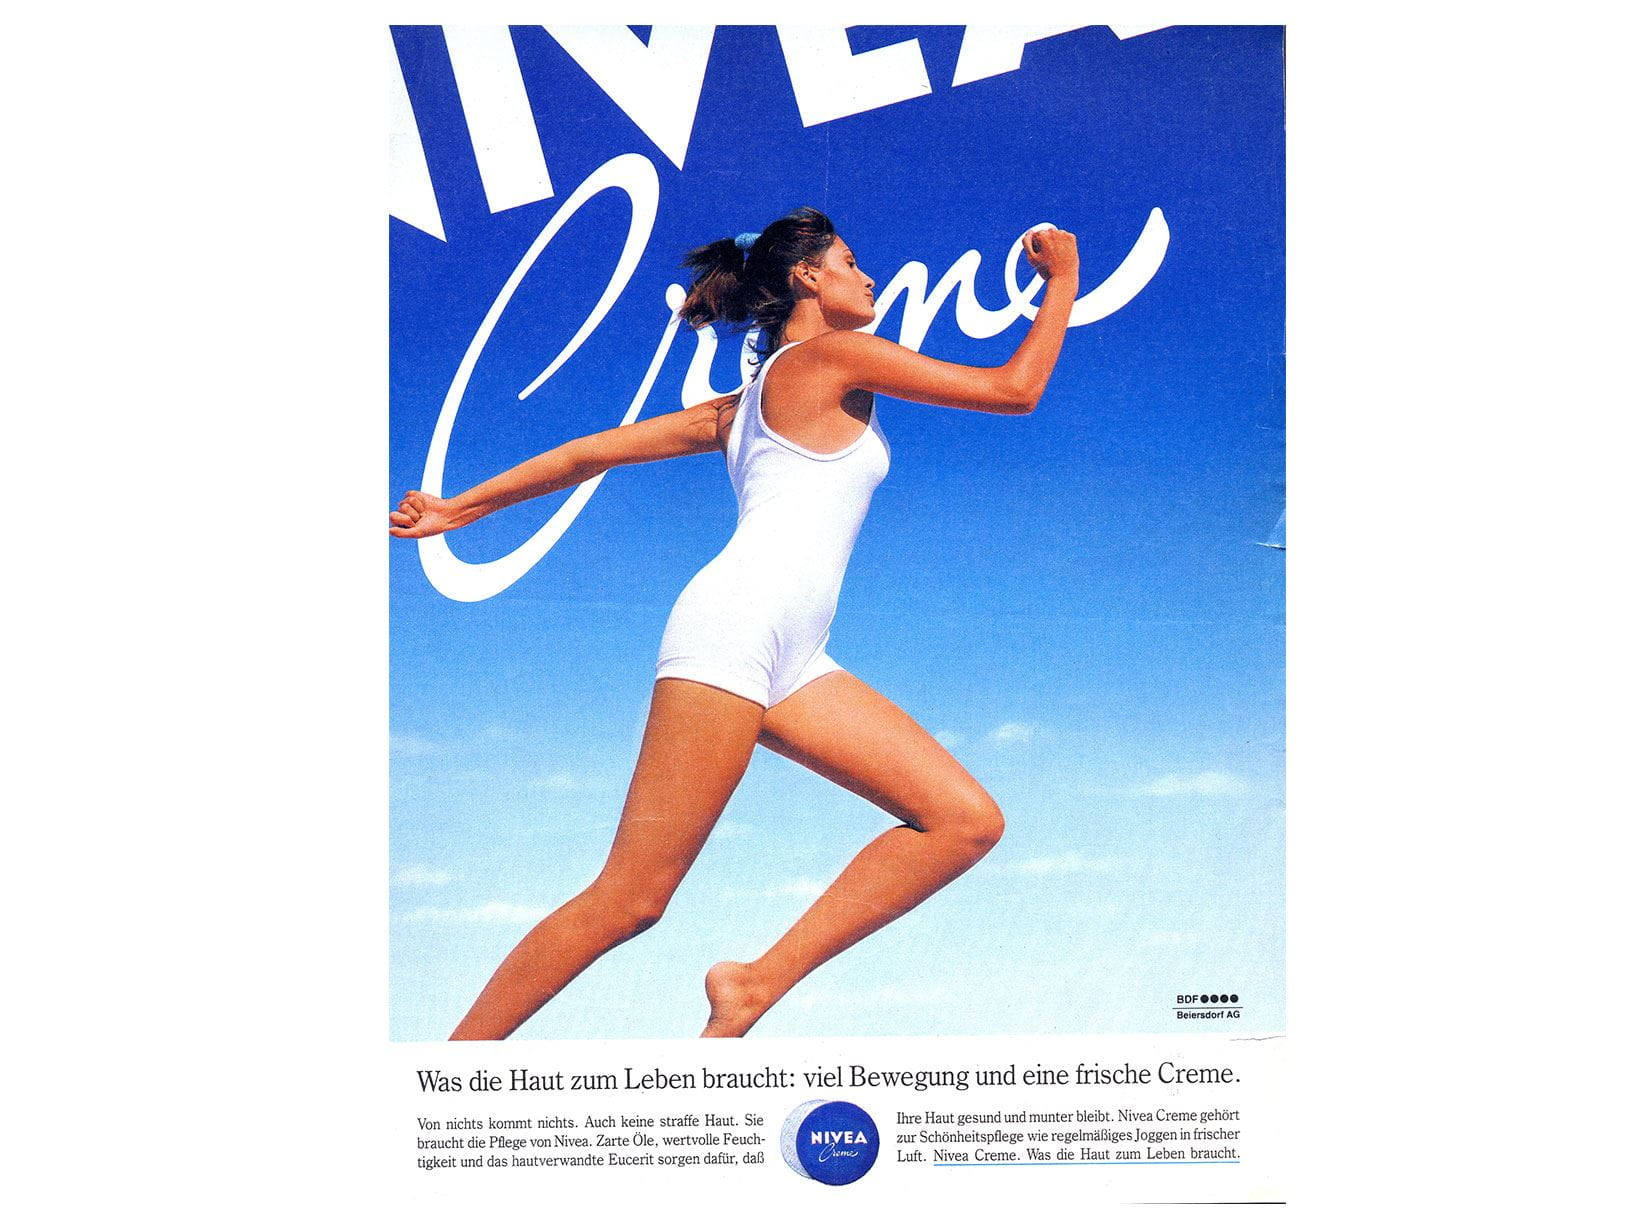 Pubblicità NIVEA Creme del 1988. What the skin needs for life: plenty of exercise and a fresh Creme (Di cosa ha bisogno la pelle per essere vitale? Di tanto movimento e una Creme fresca).